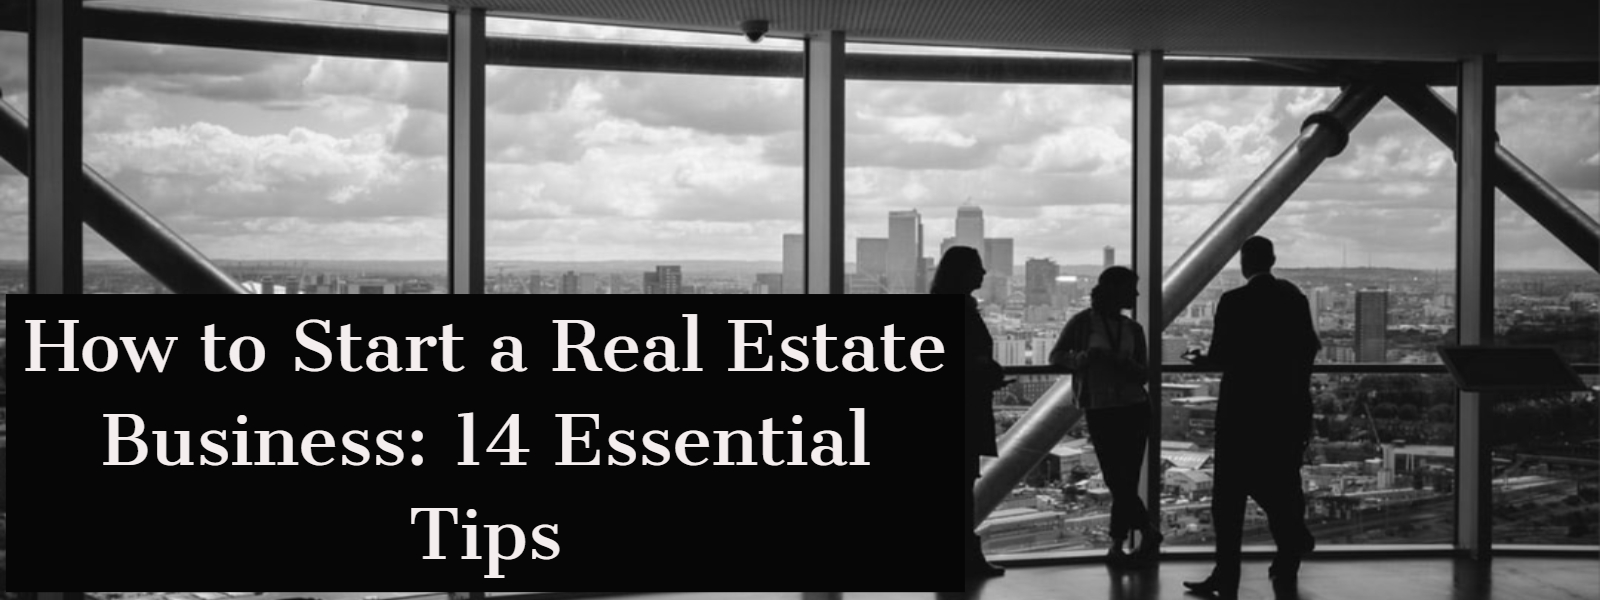 How to Start a Real Estate Business: 14 Essential Tips